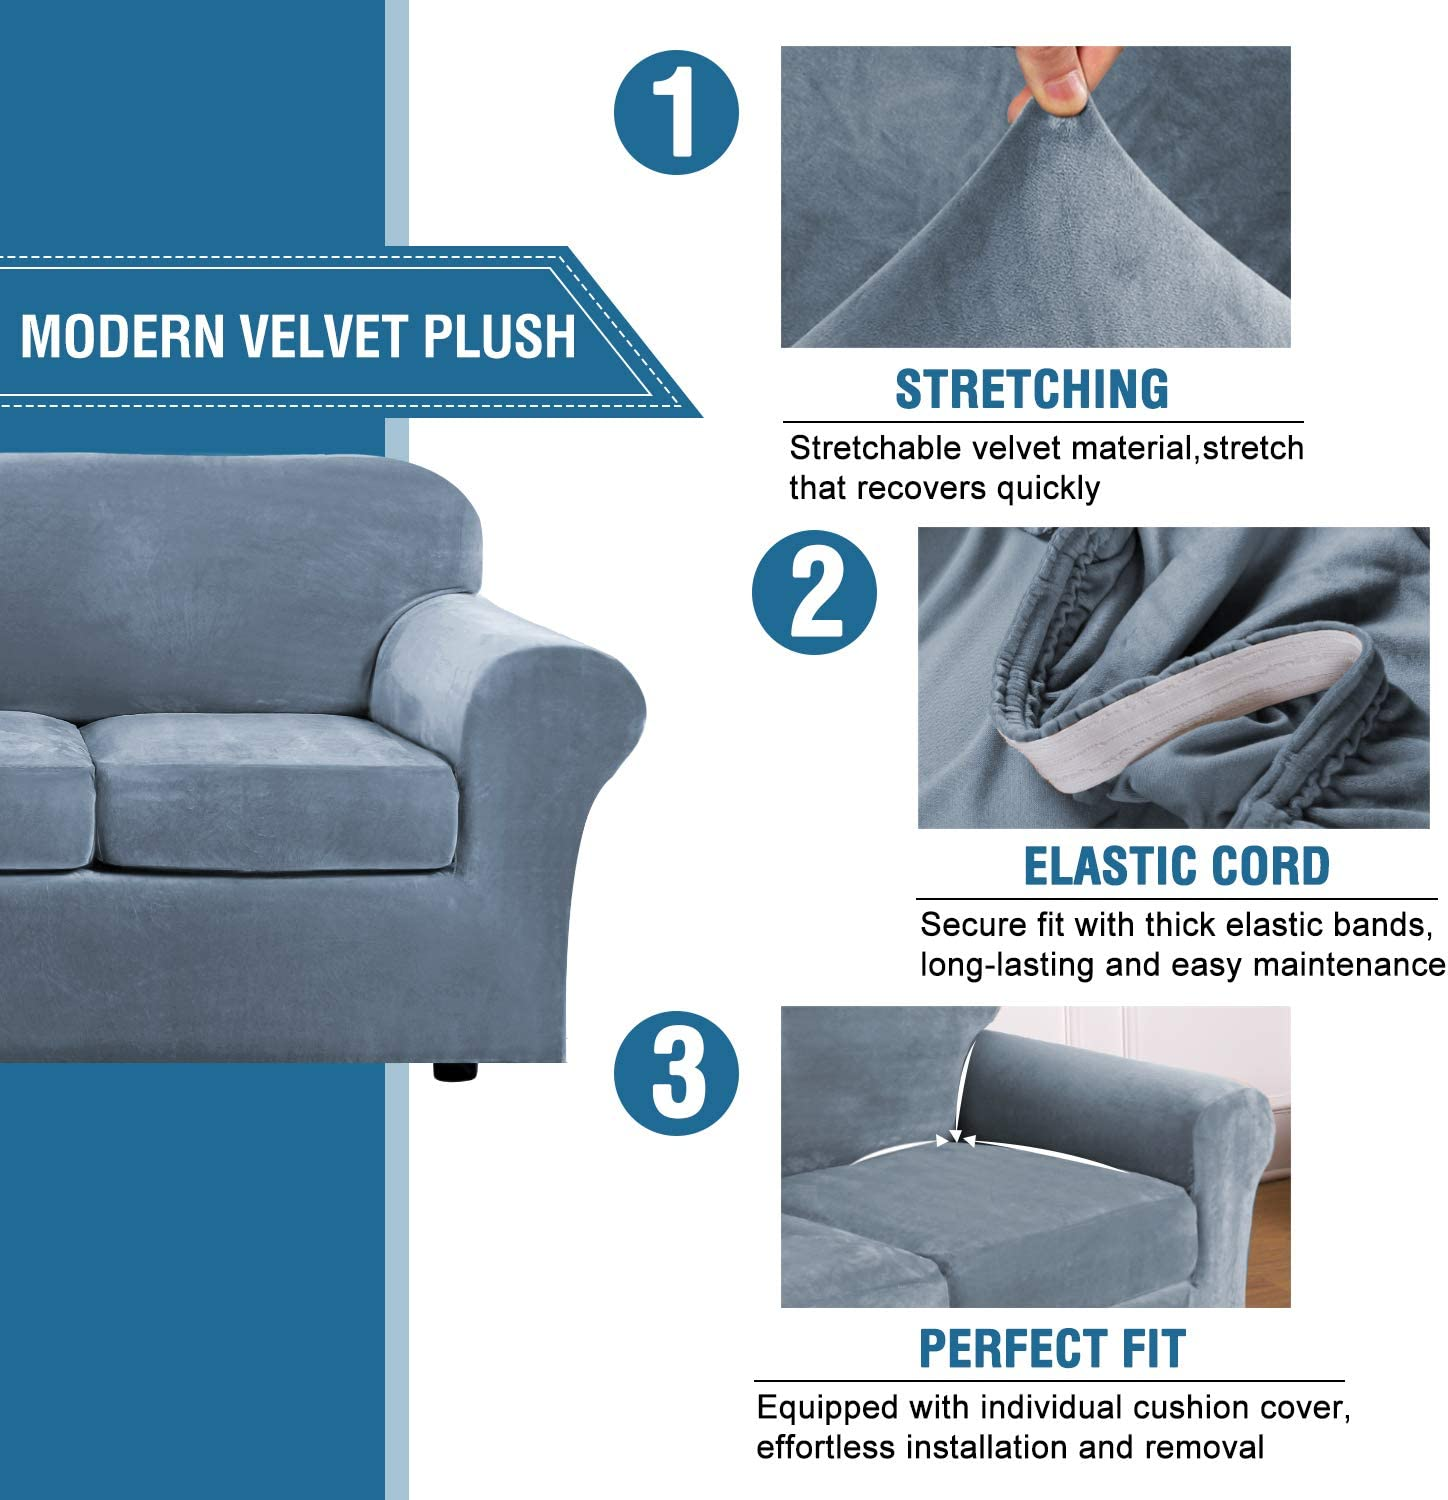 Machine Washable Modern Velvet Plush 4 Piece High Stretch Sofa Slipcover Strap Sofa Cover Furniture Protector Form Fit Luxury Thick Velvet Sofa Cover for 3 Cushion Couch Sofa,Navy